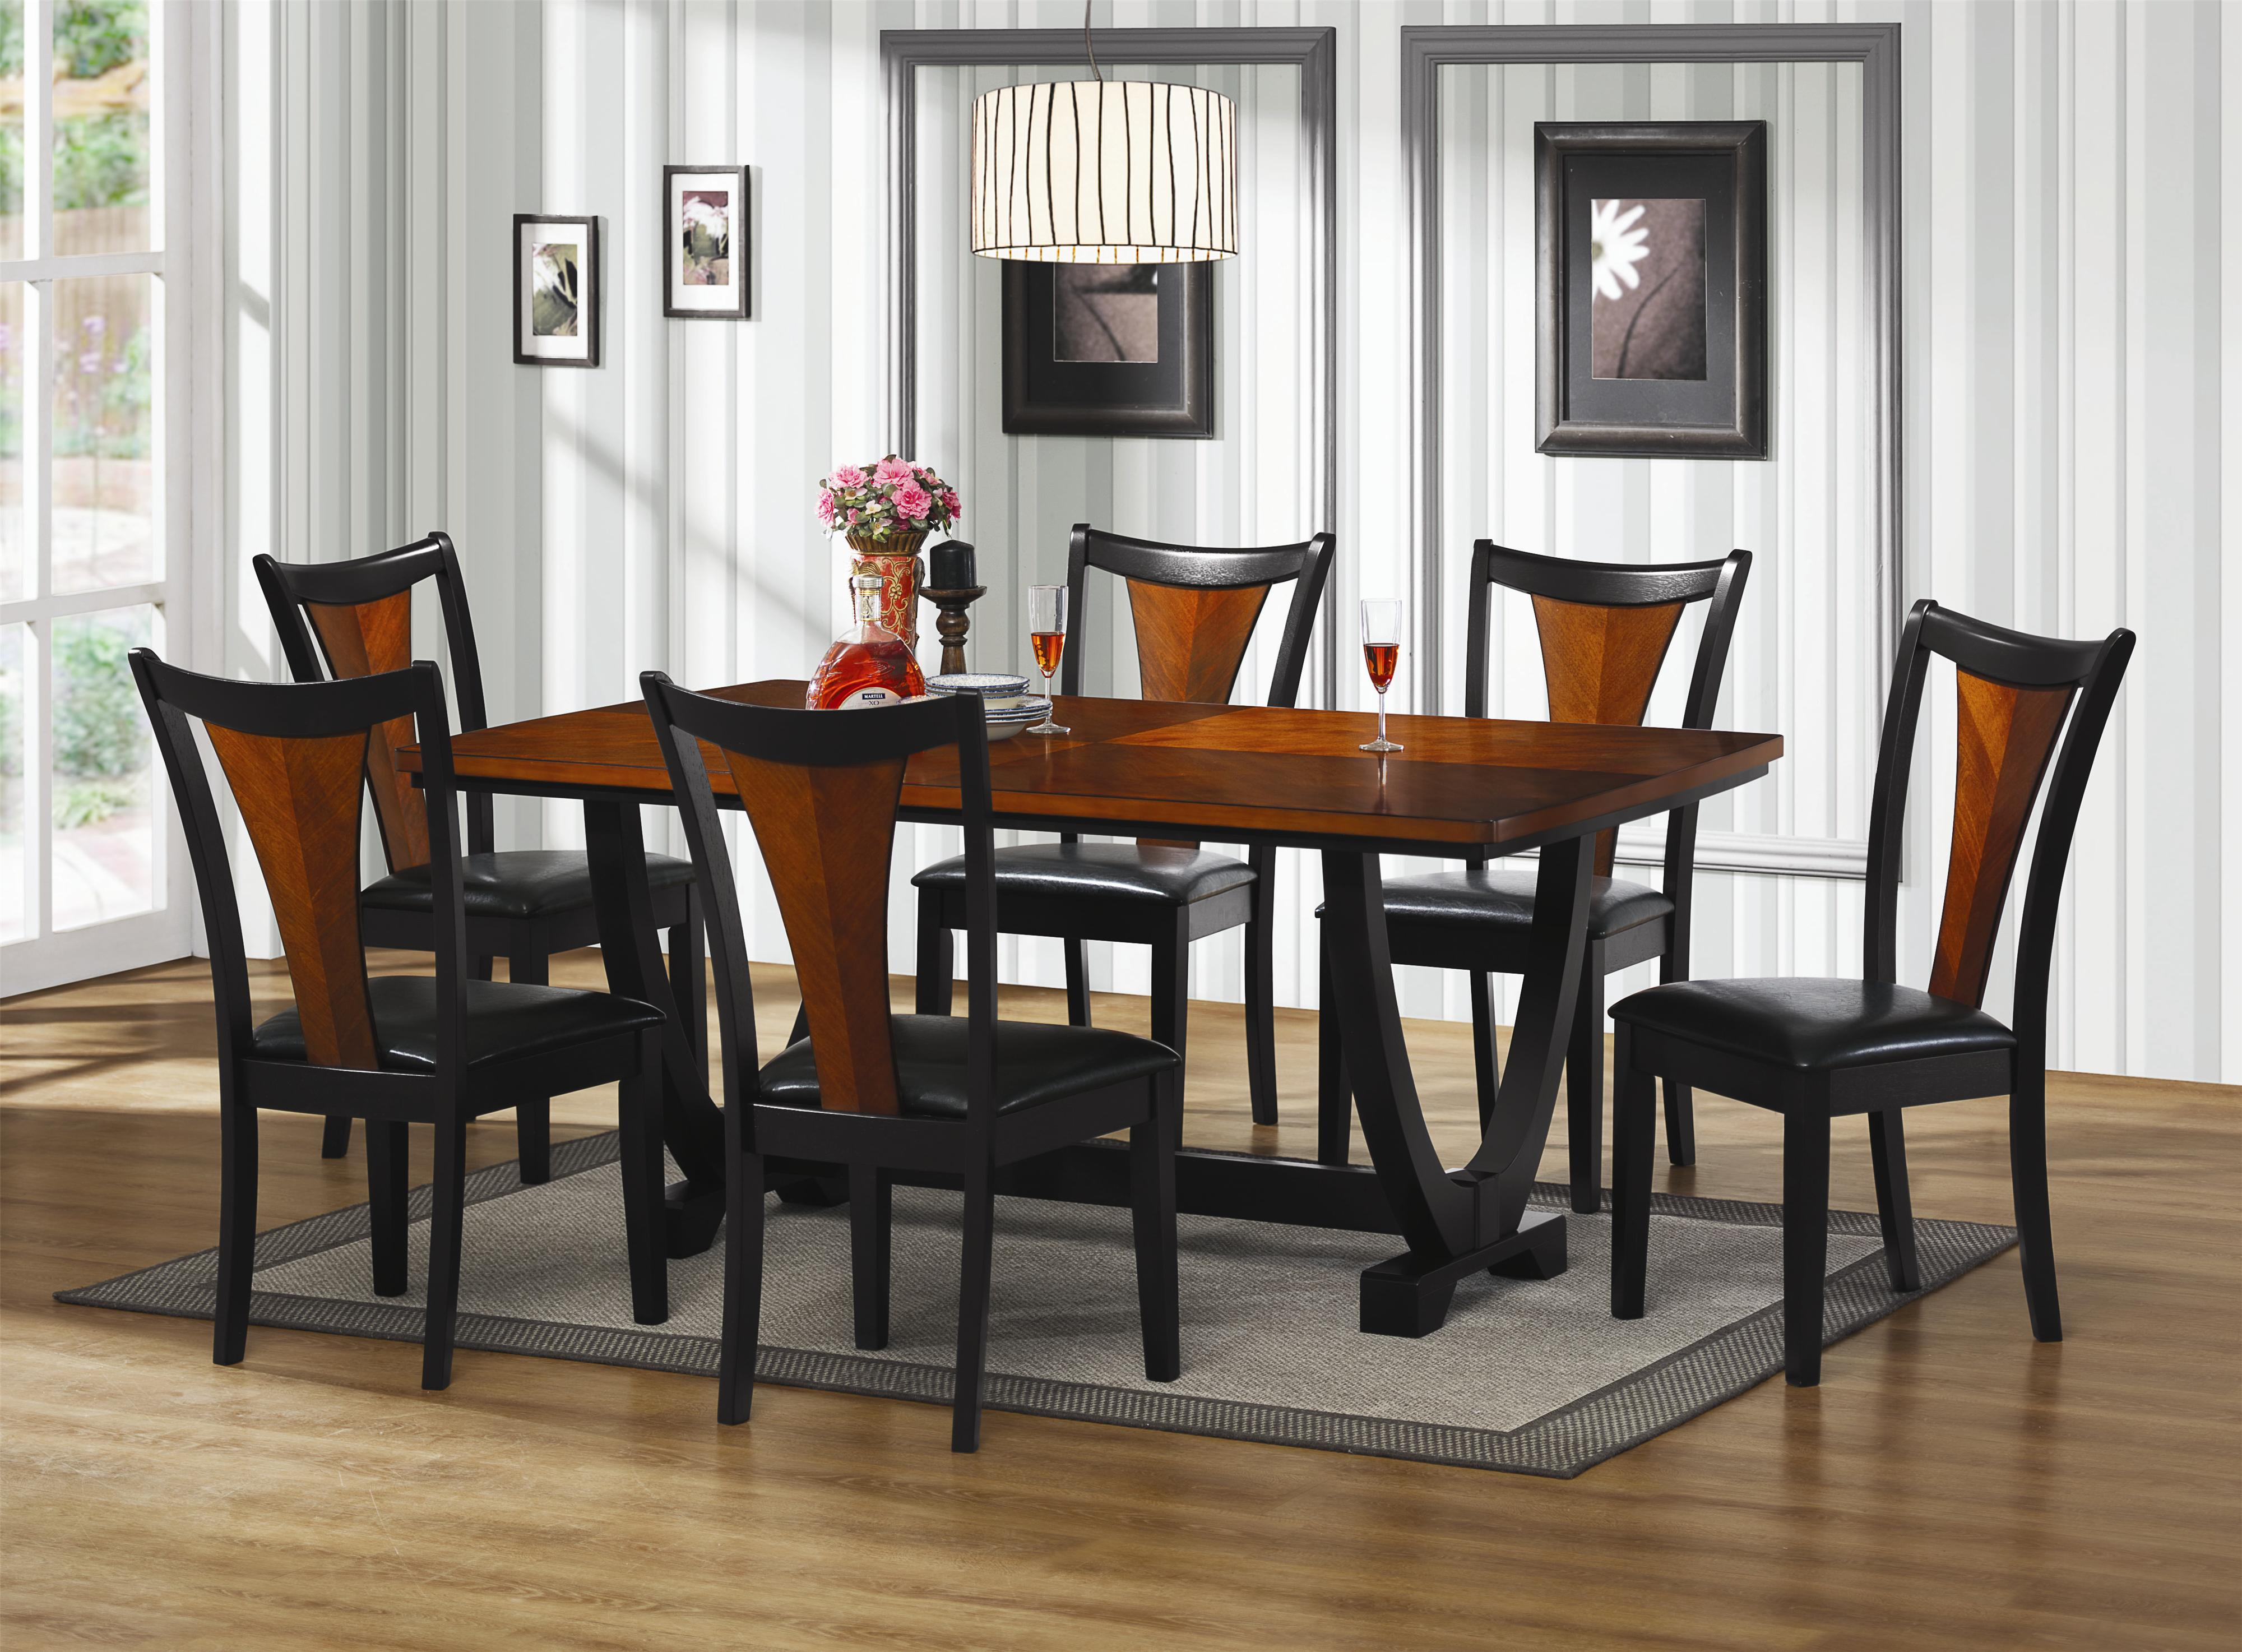 Dining room chairs to complete your dining table custom for Complete dining room sets